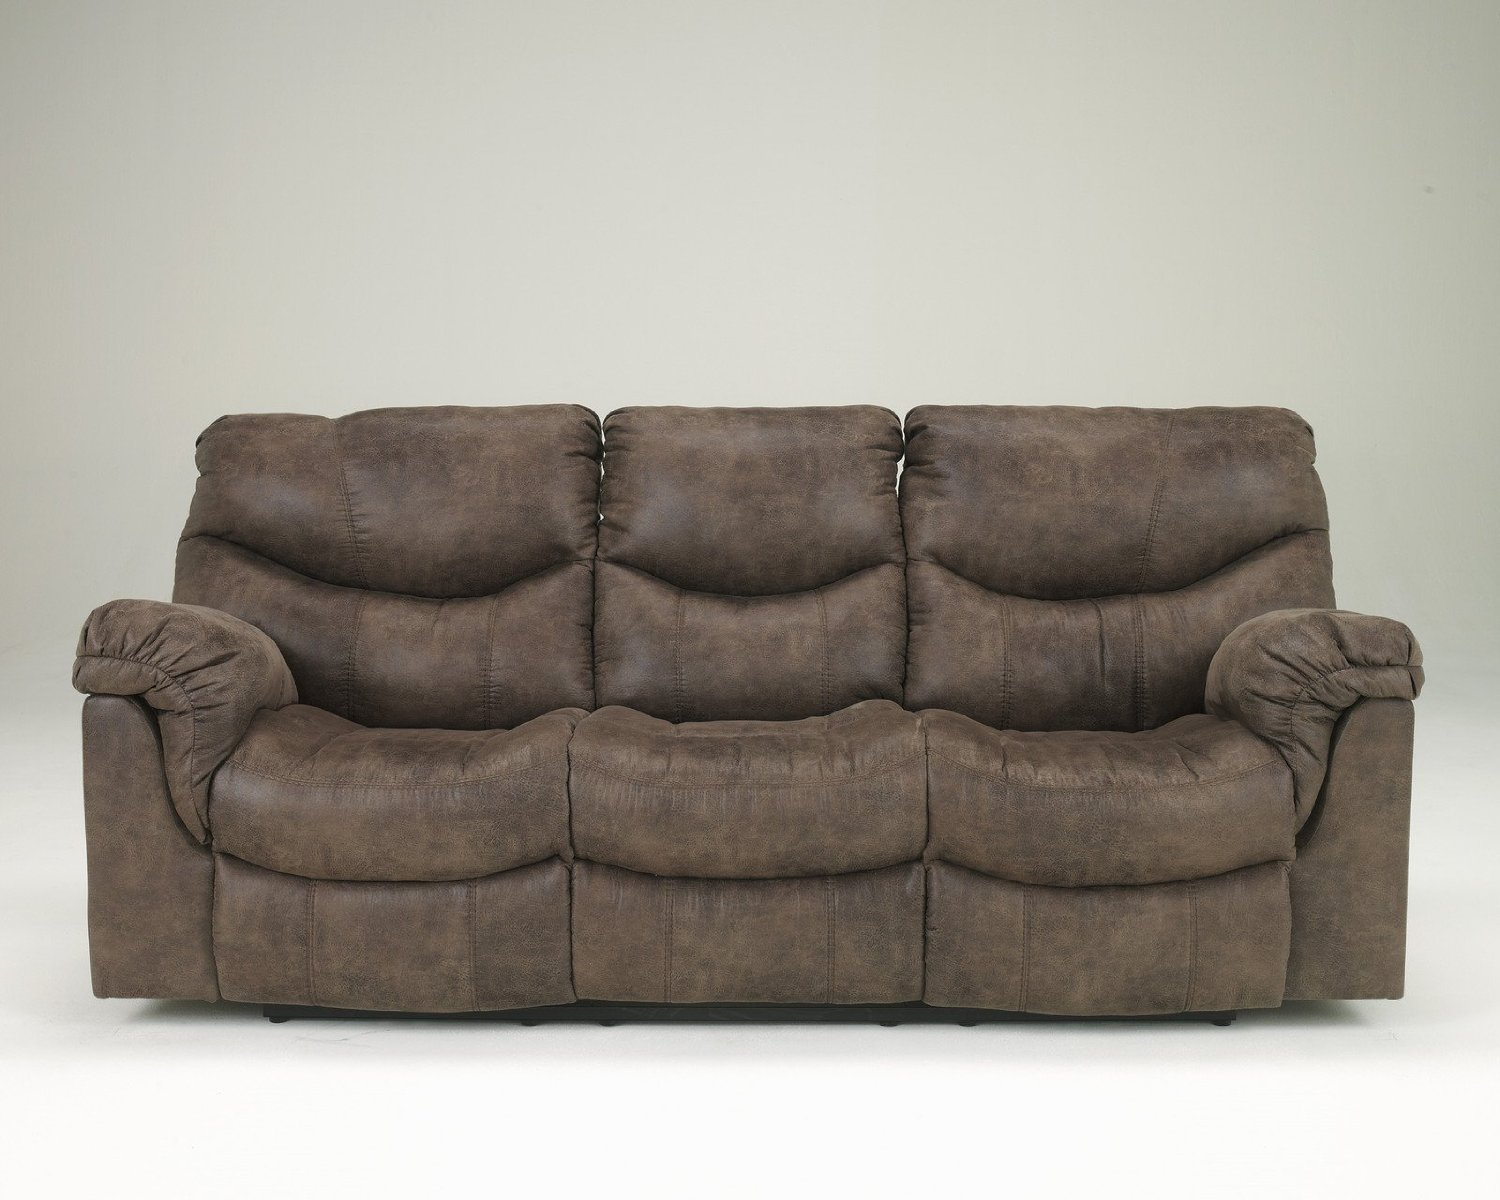 The Best Home Furnishings Reclining Sofa Reviews Ashley Furniture Power Reclining Sofa Reviews